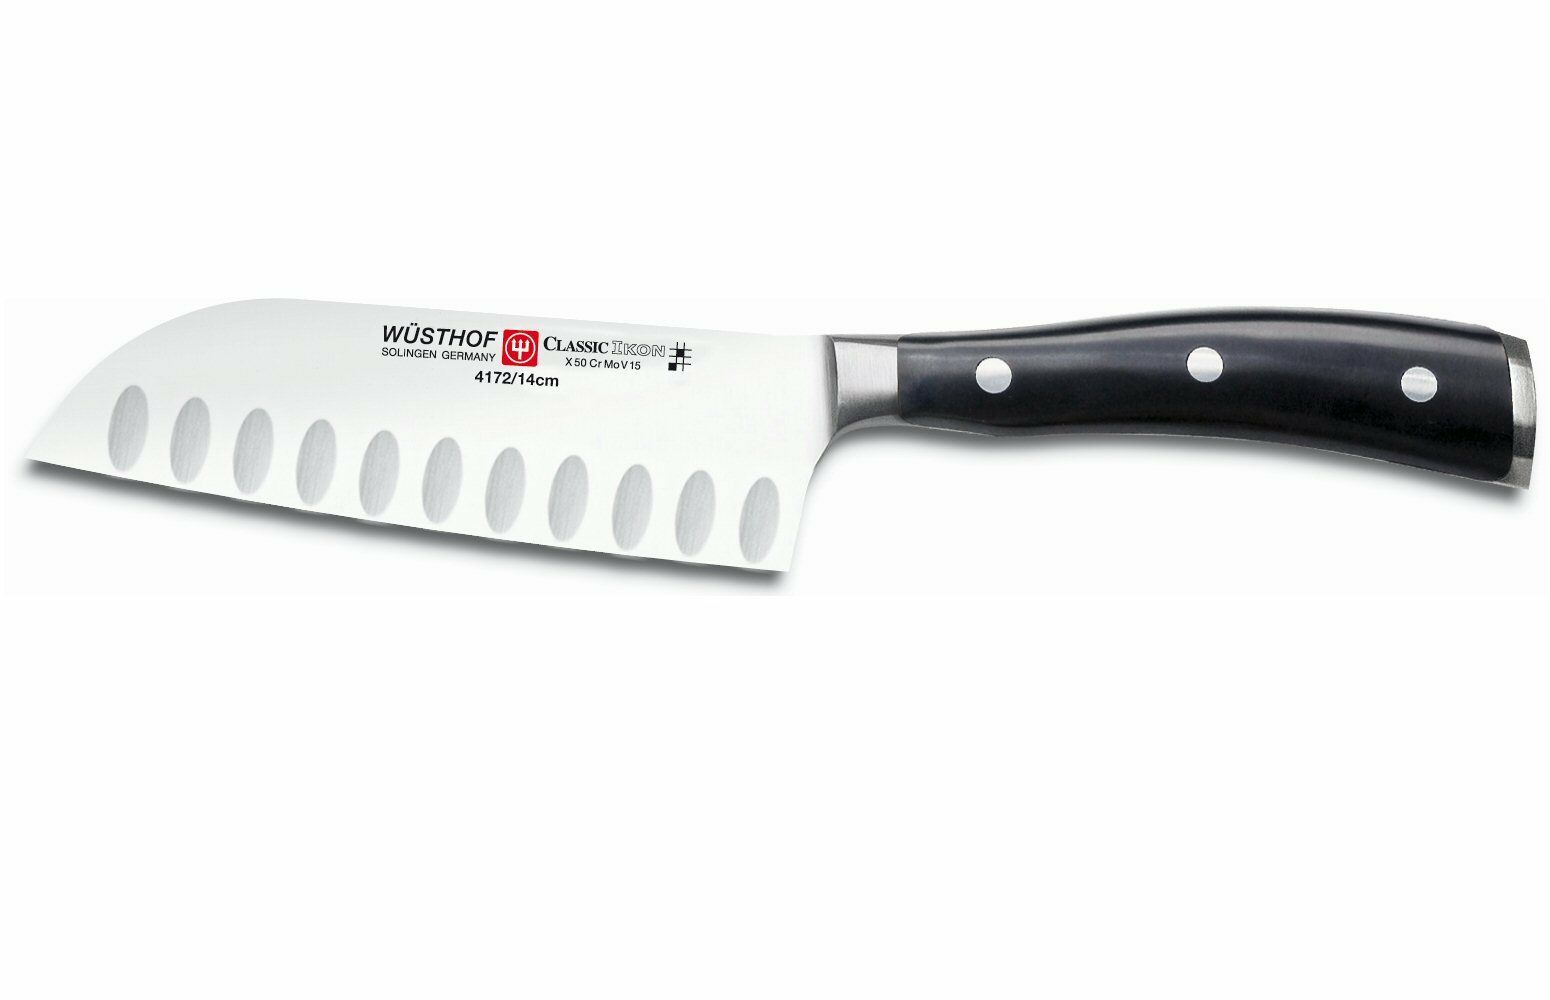 Wusthof Classic Ikon 5  Hollow Edge Santoku Knife